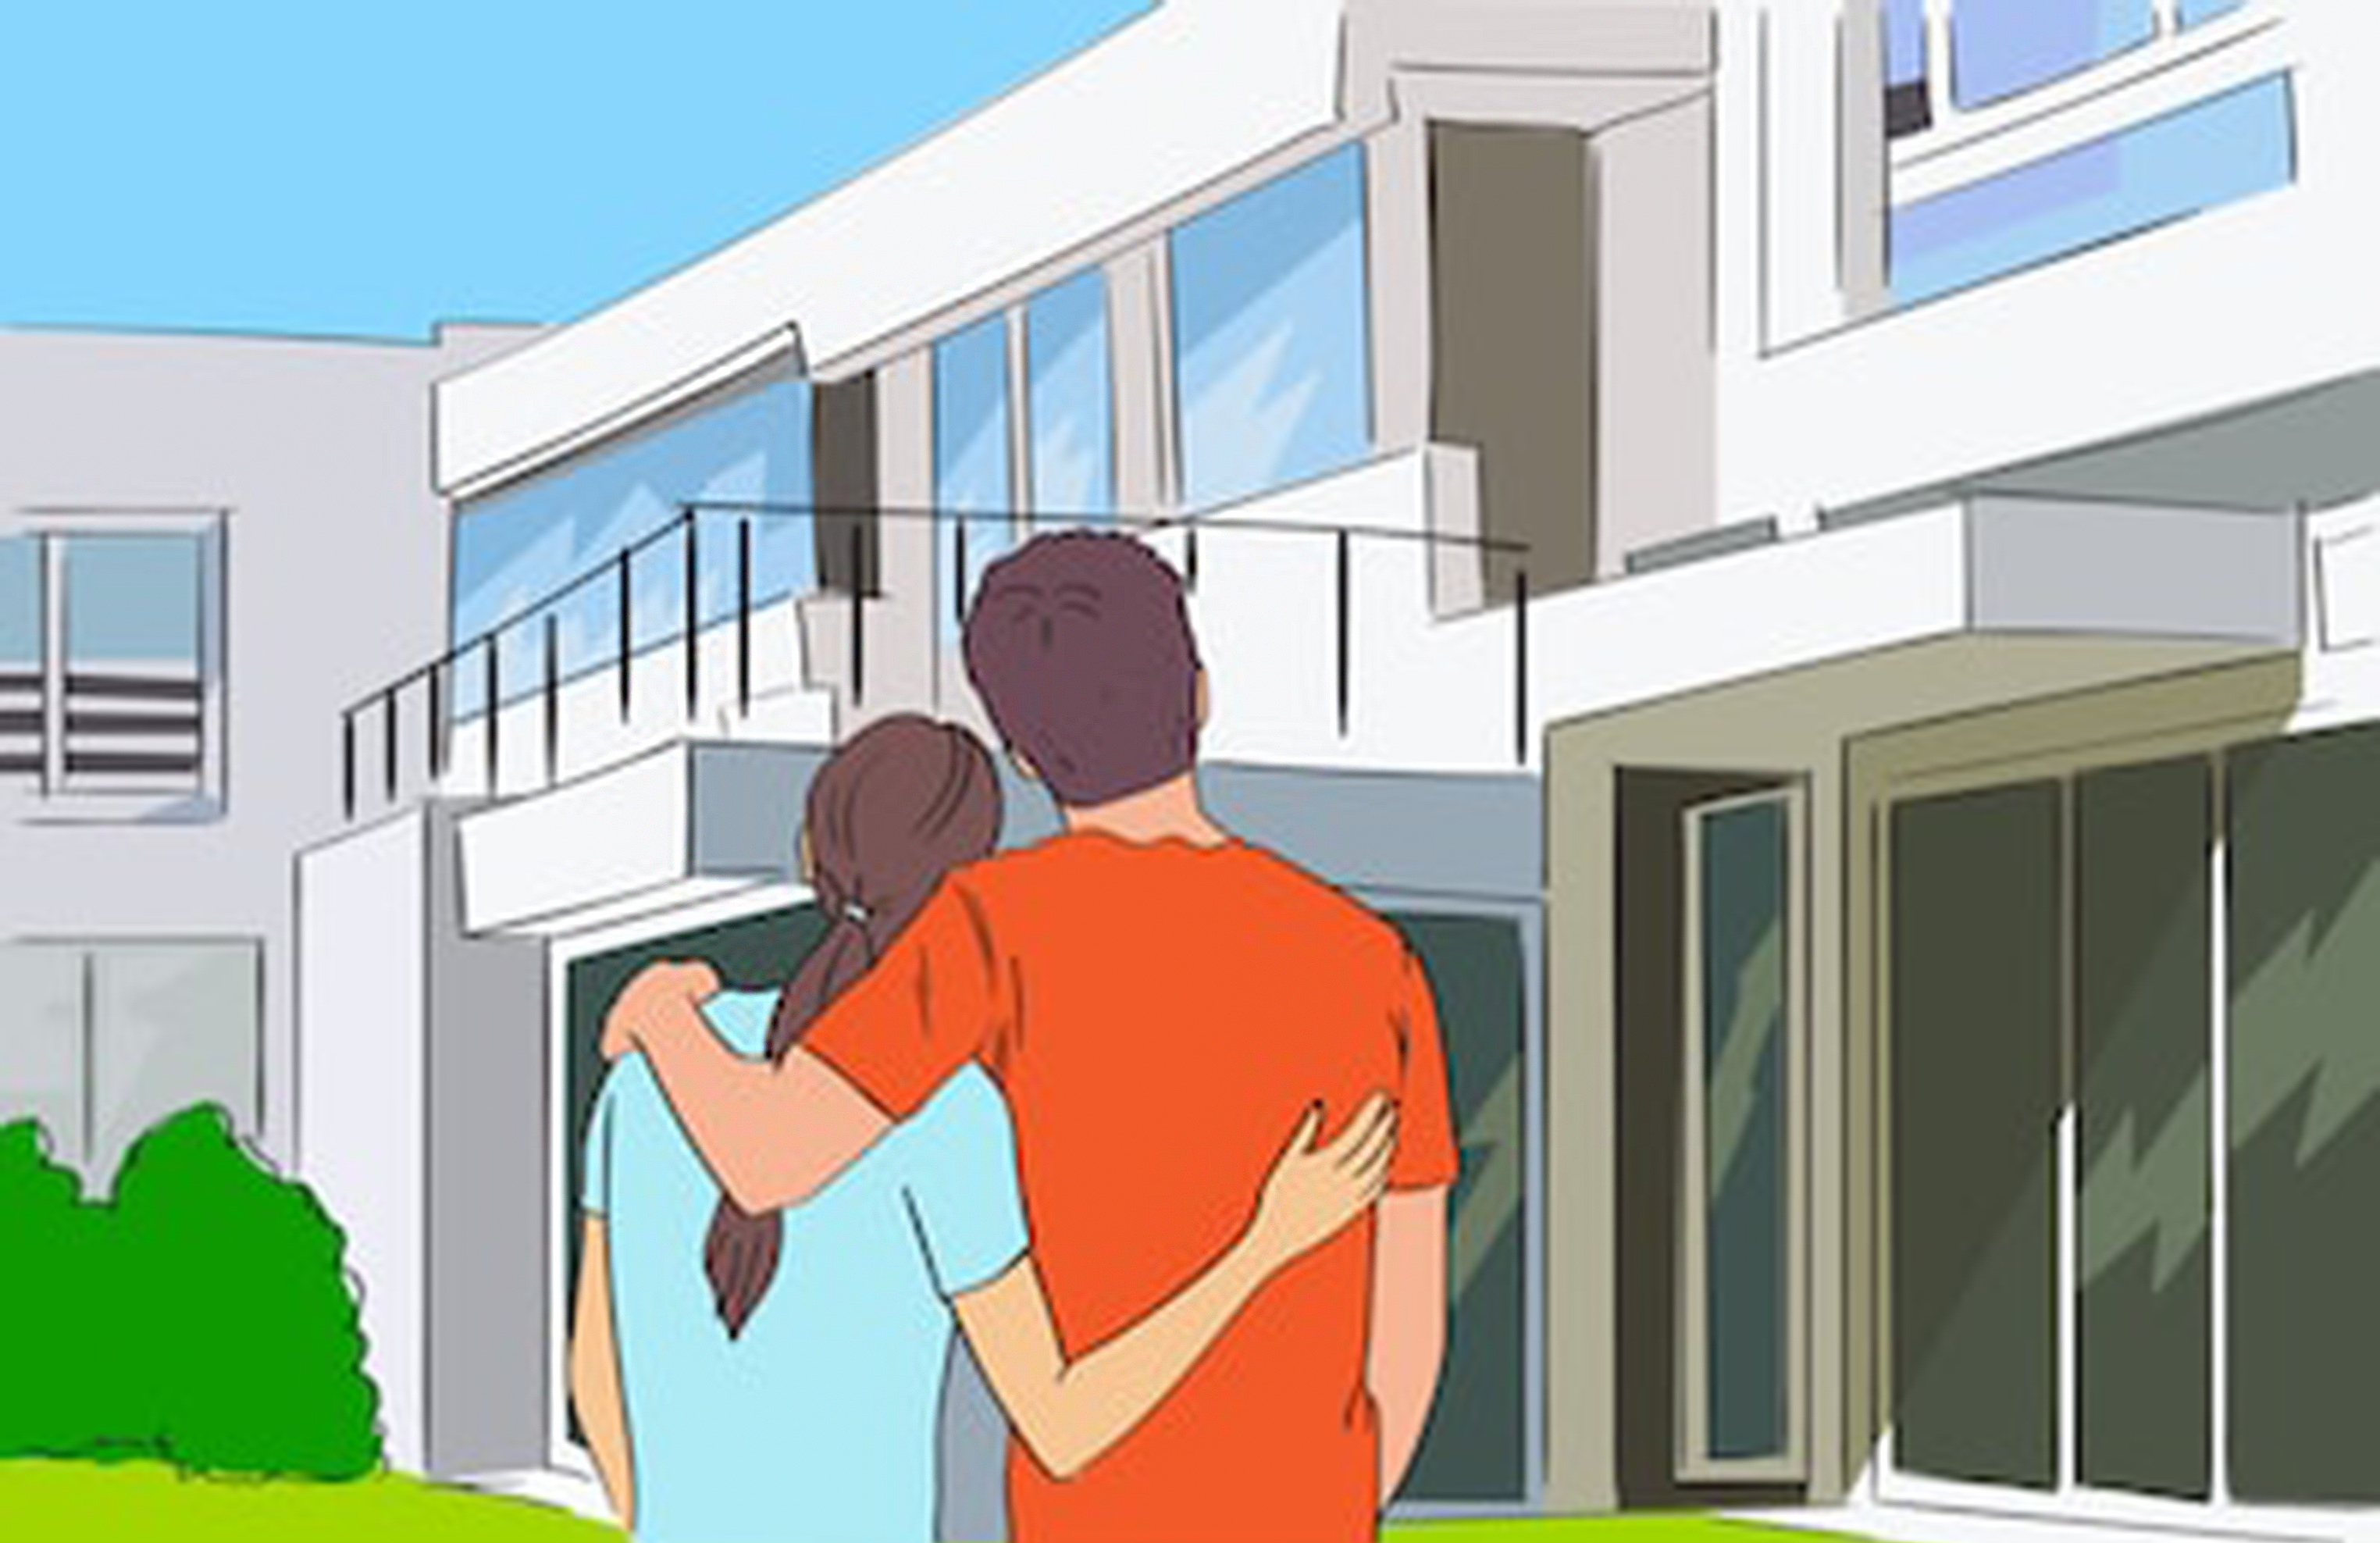 couple-embracing-front-new-big-260nw-390721120.jpg